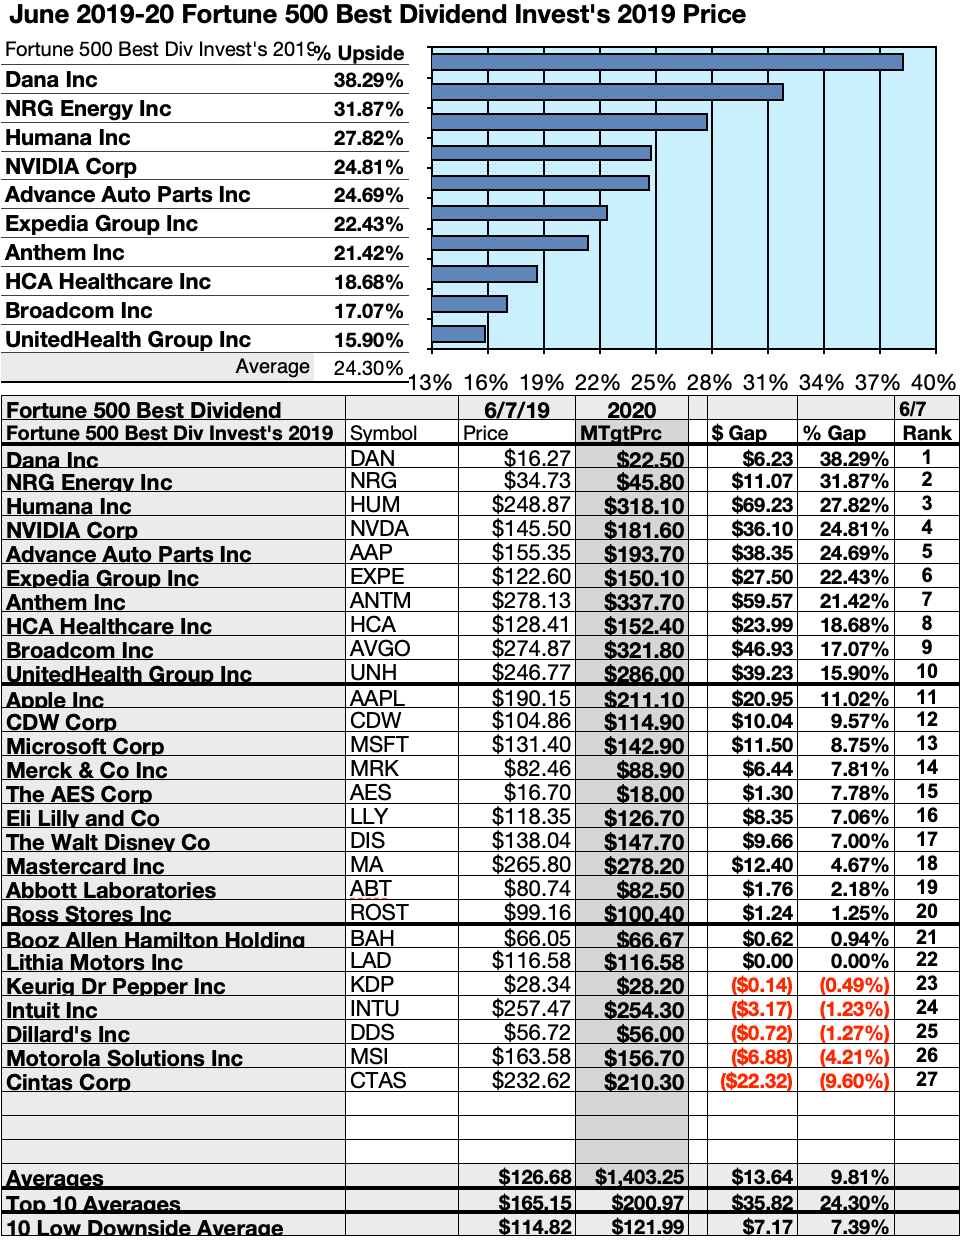 Top Dividend Stocks 2020.These 27 Fortune 500 Dividend Stocks Made The Best Total Returns To